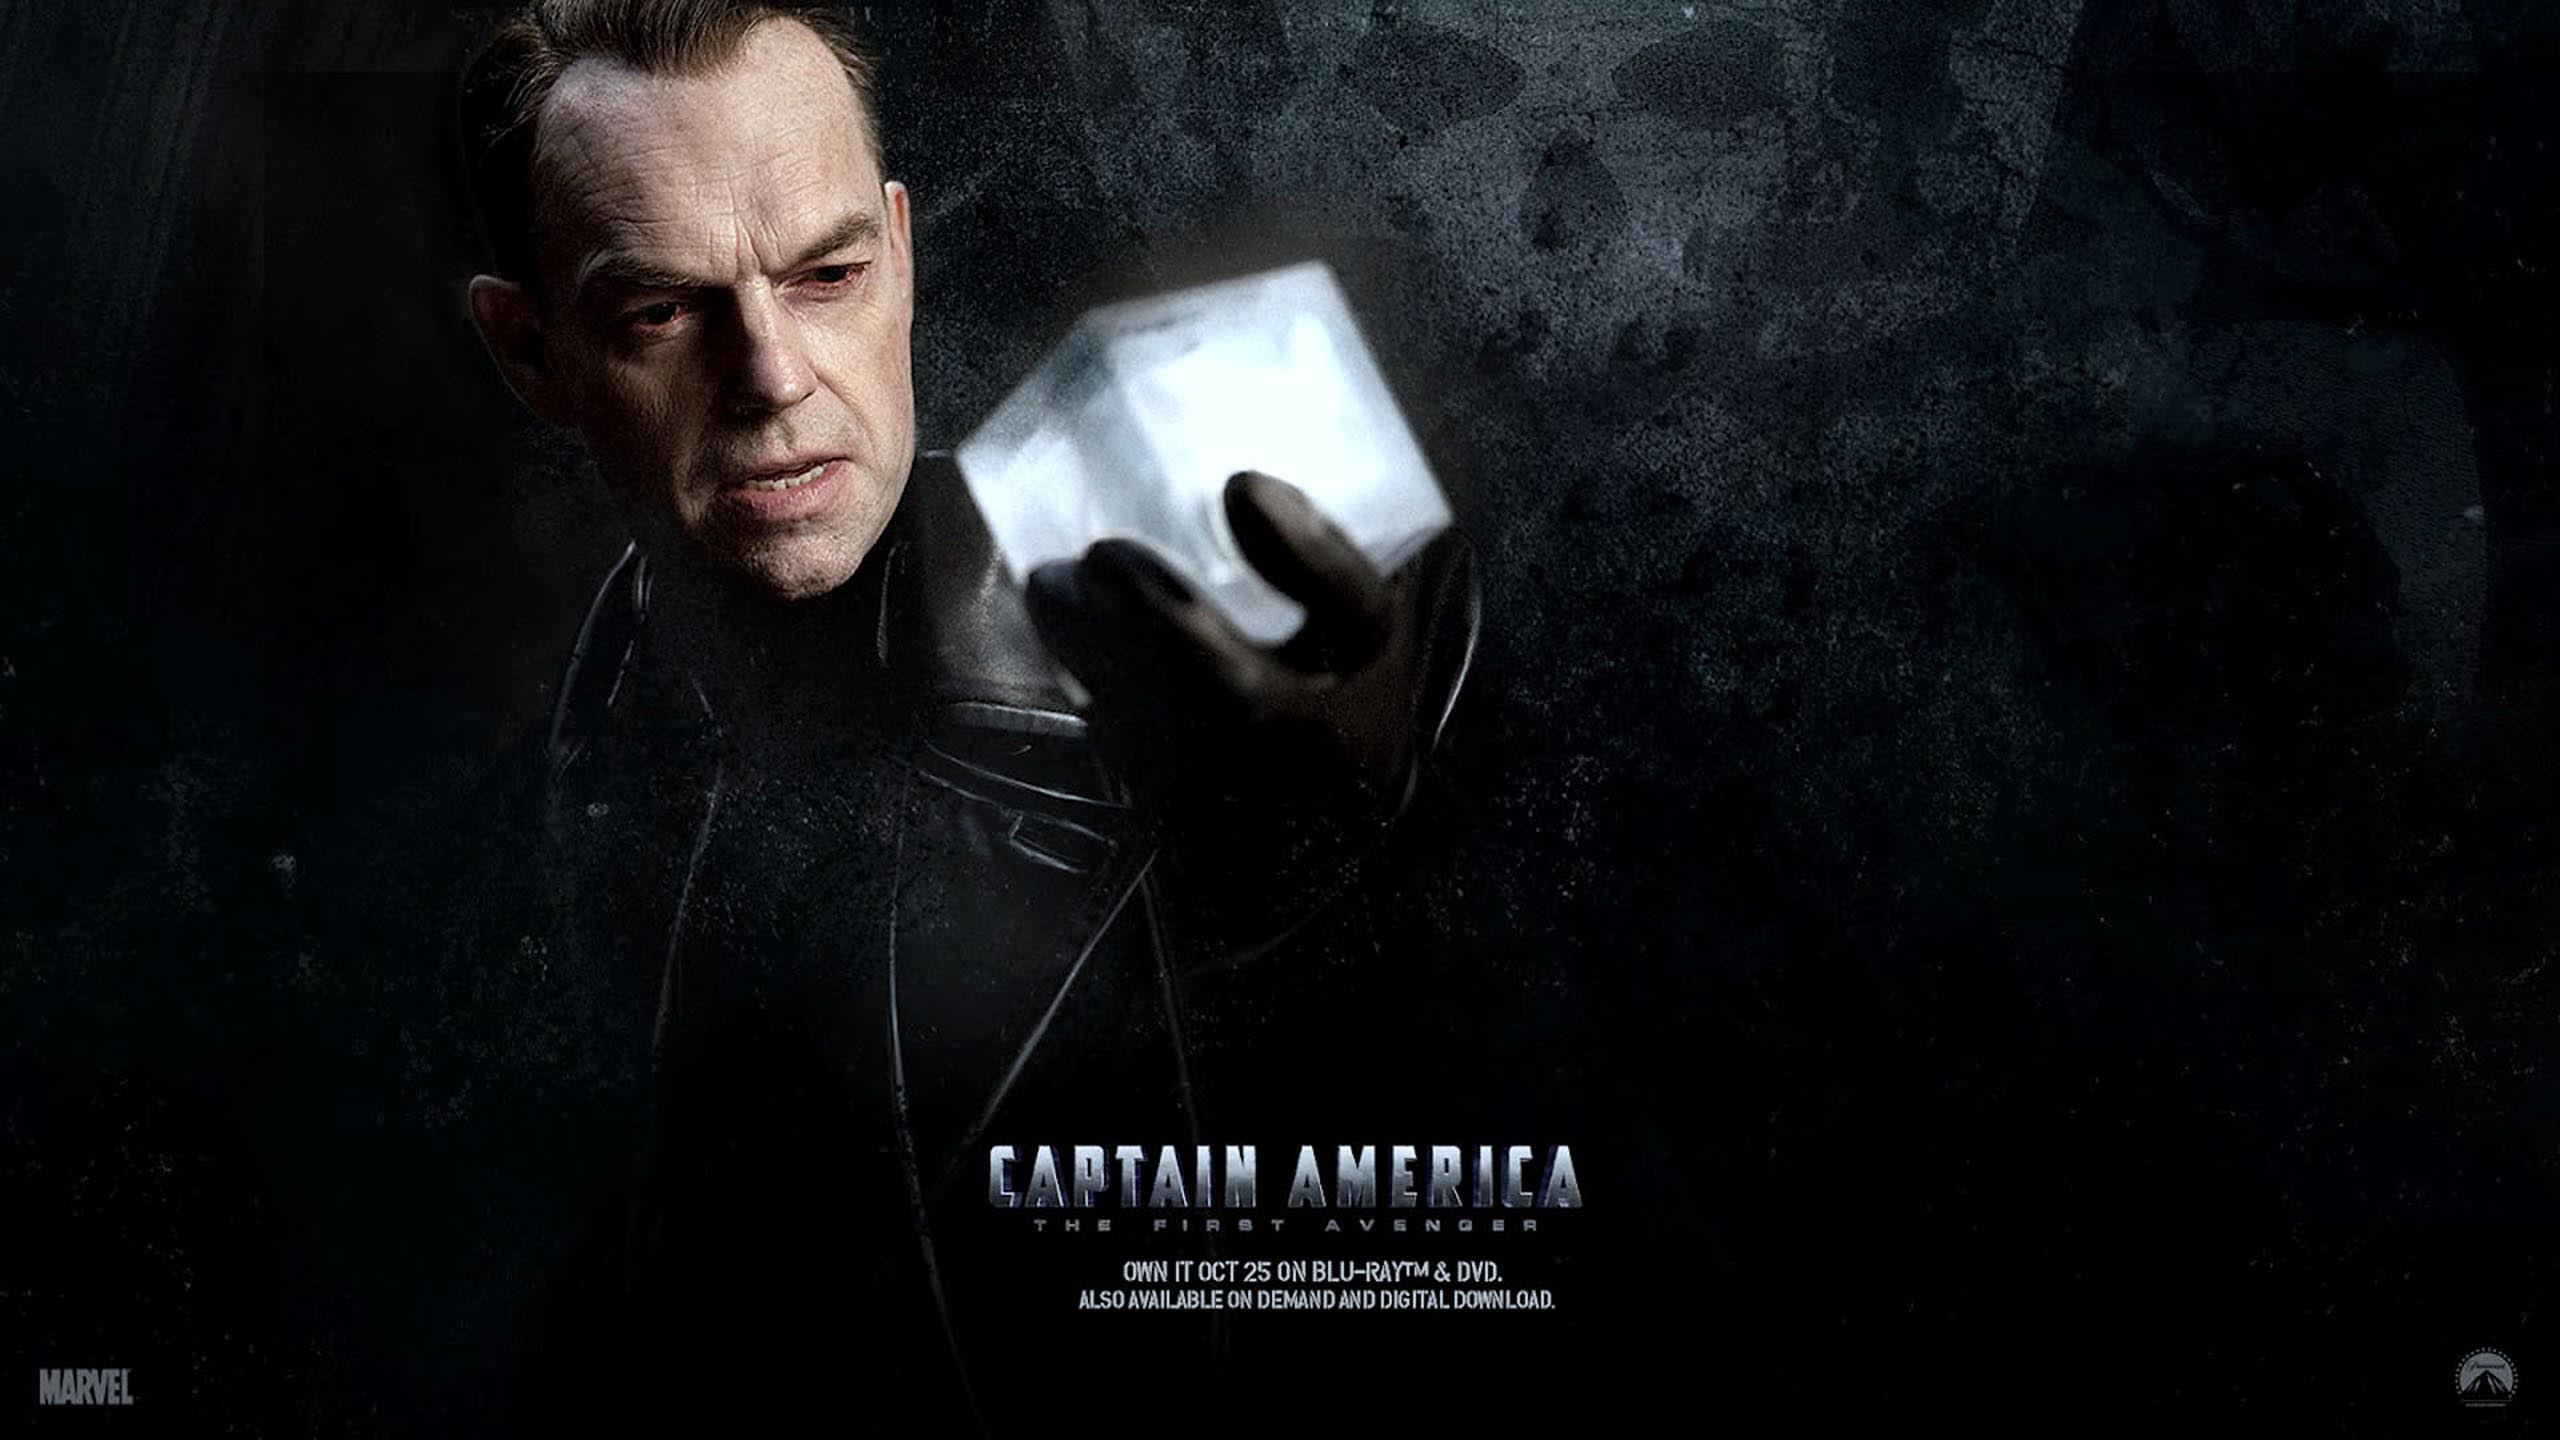 captain-america-shield-http-1080-net-captain-america-shield-html-wallpaper-wpc5803221